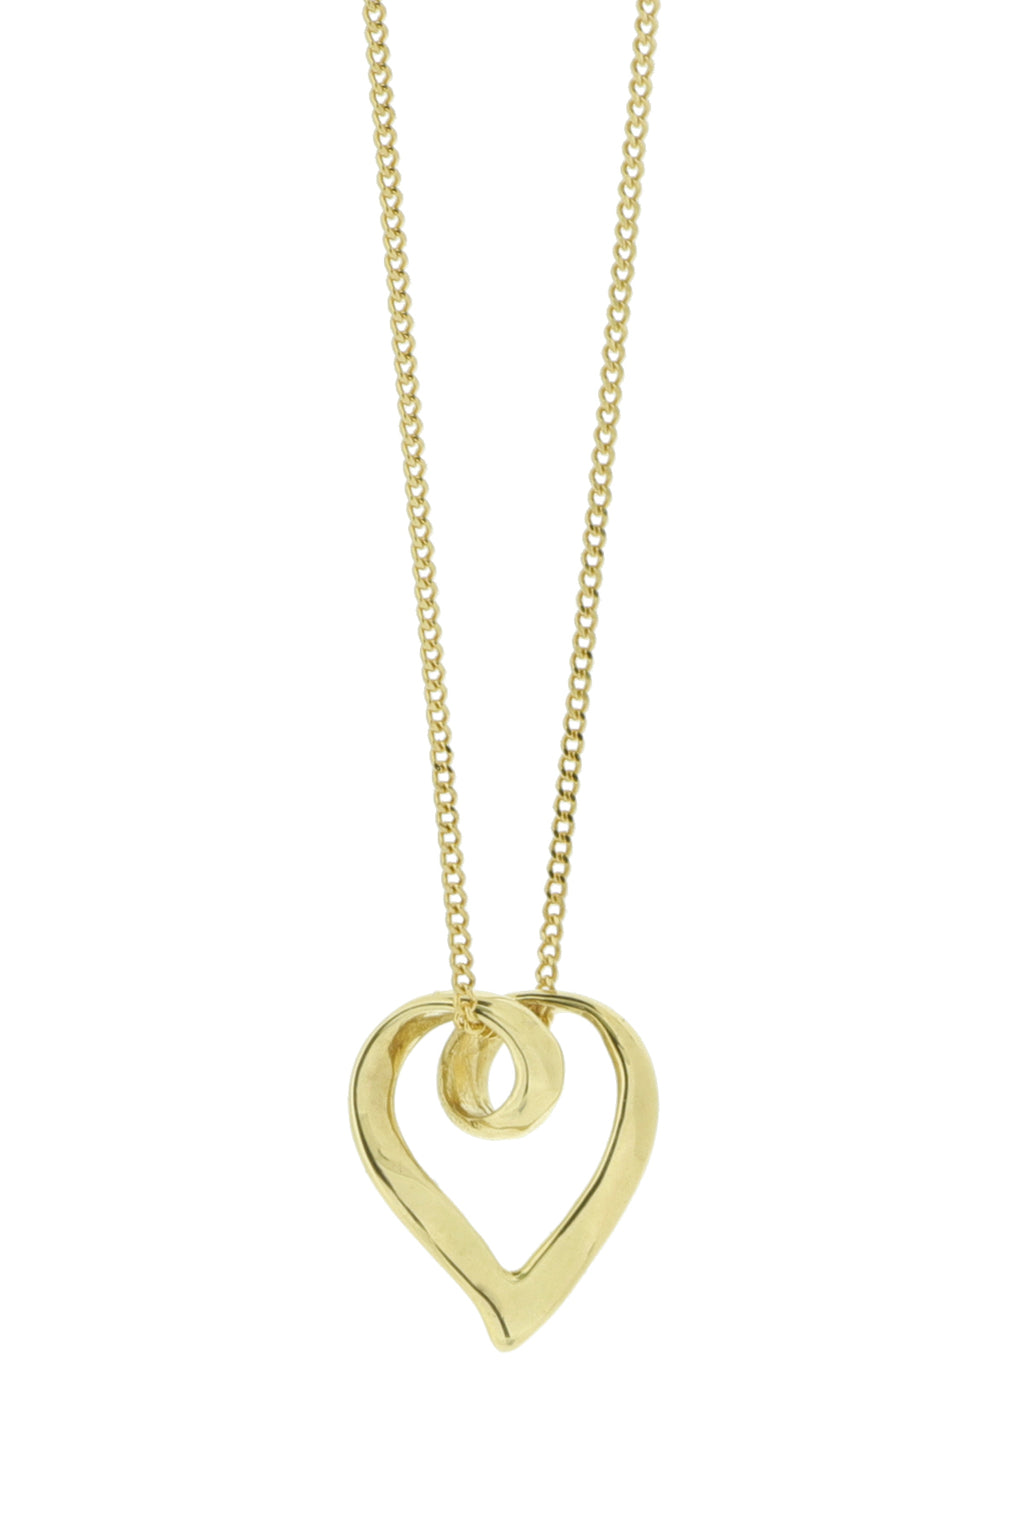 9ct Gold Pendant Twisted Heart